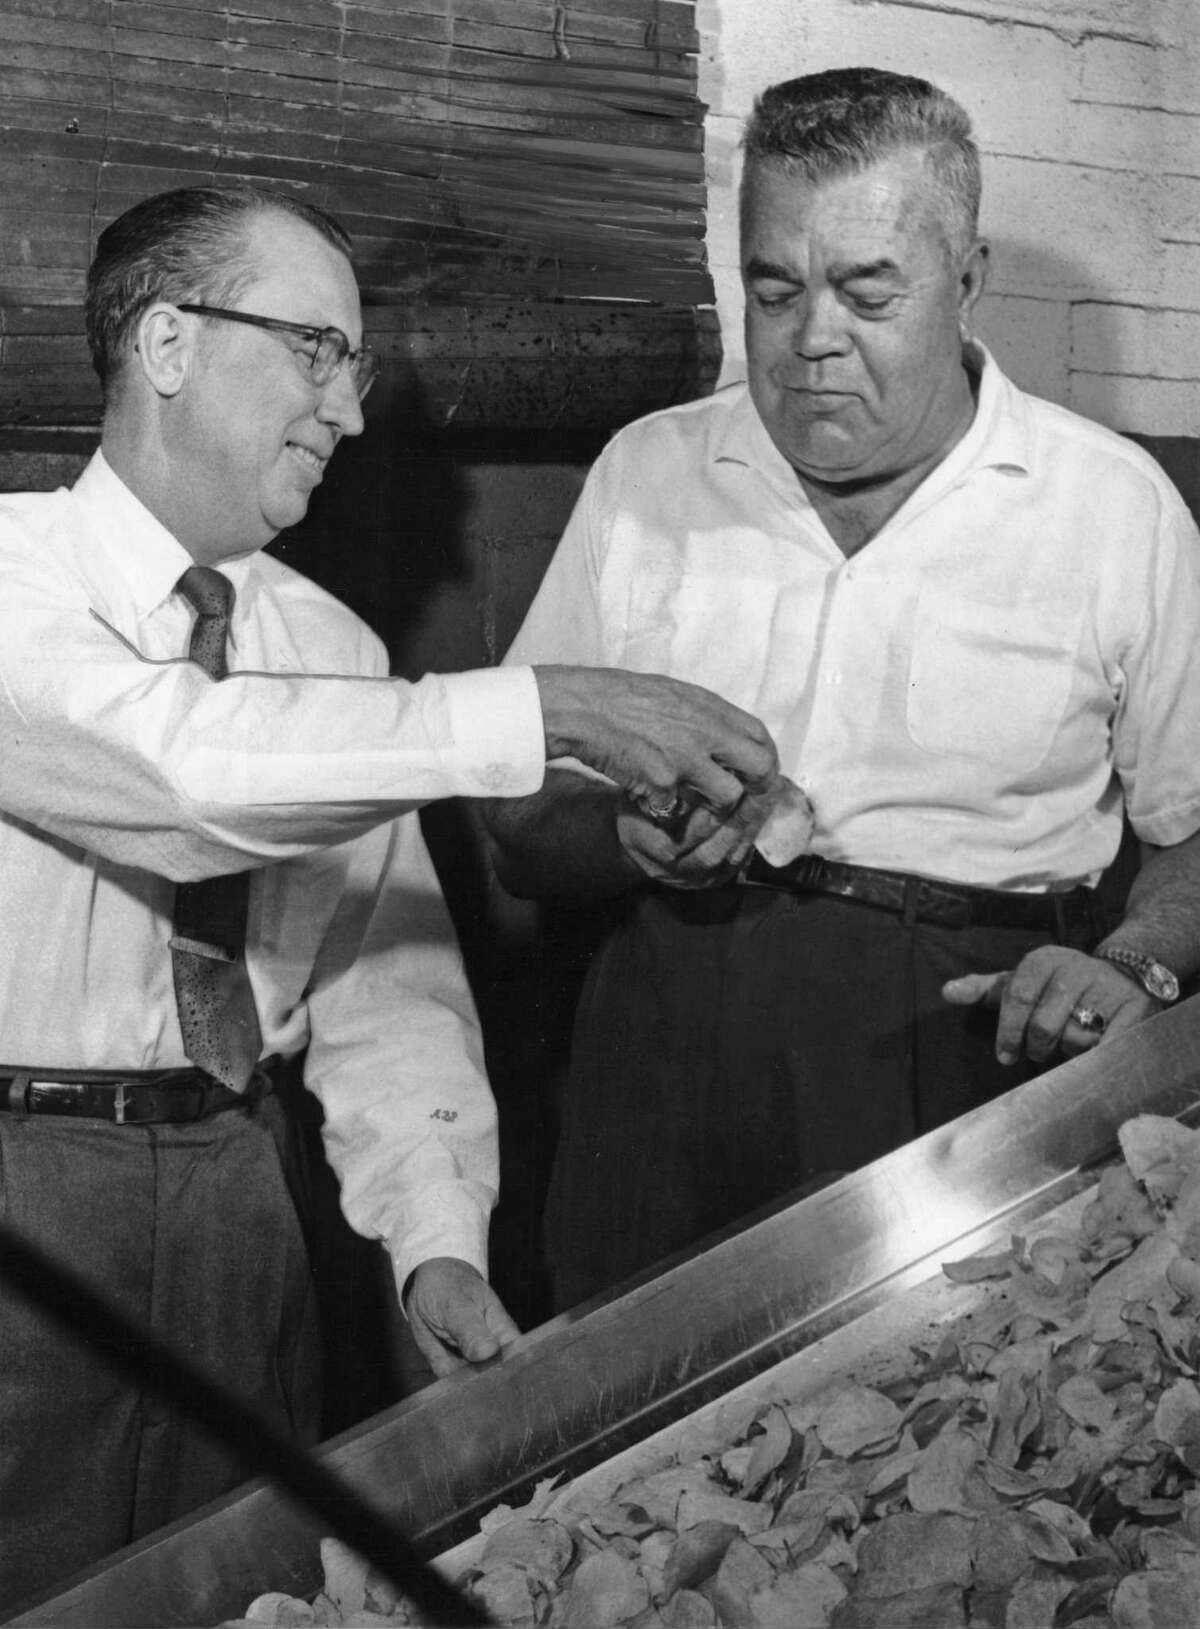 Arthur B. Preble, left, hands a potato chip off the line to George W. Dentler at the Dentler Maid potato chip factory in Houston in 1963. In 1931, Preble partnered with Dentler's father, George H. Dentler, in the family-run business which George H. started around 1910.